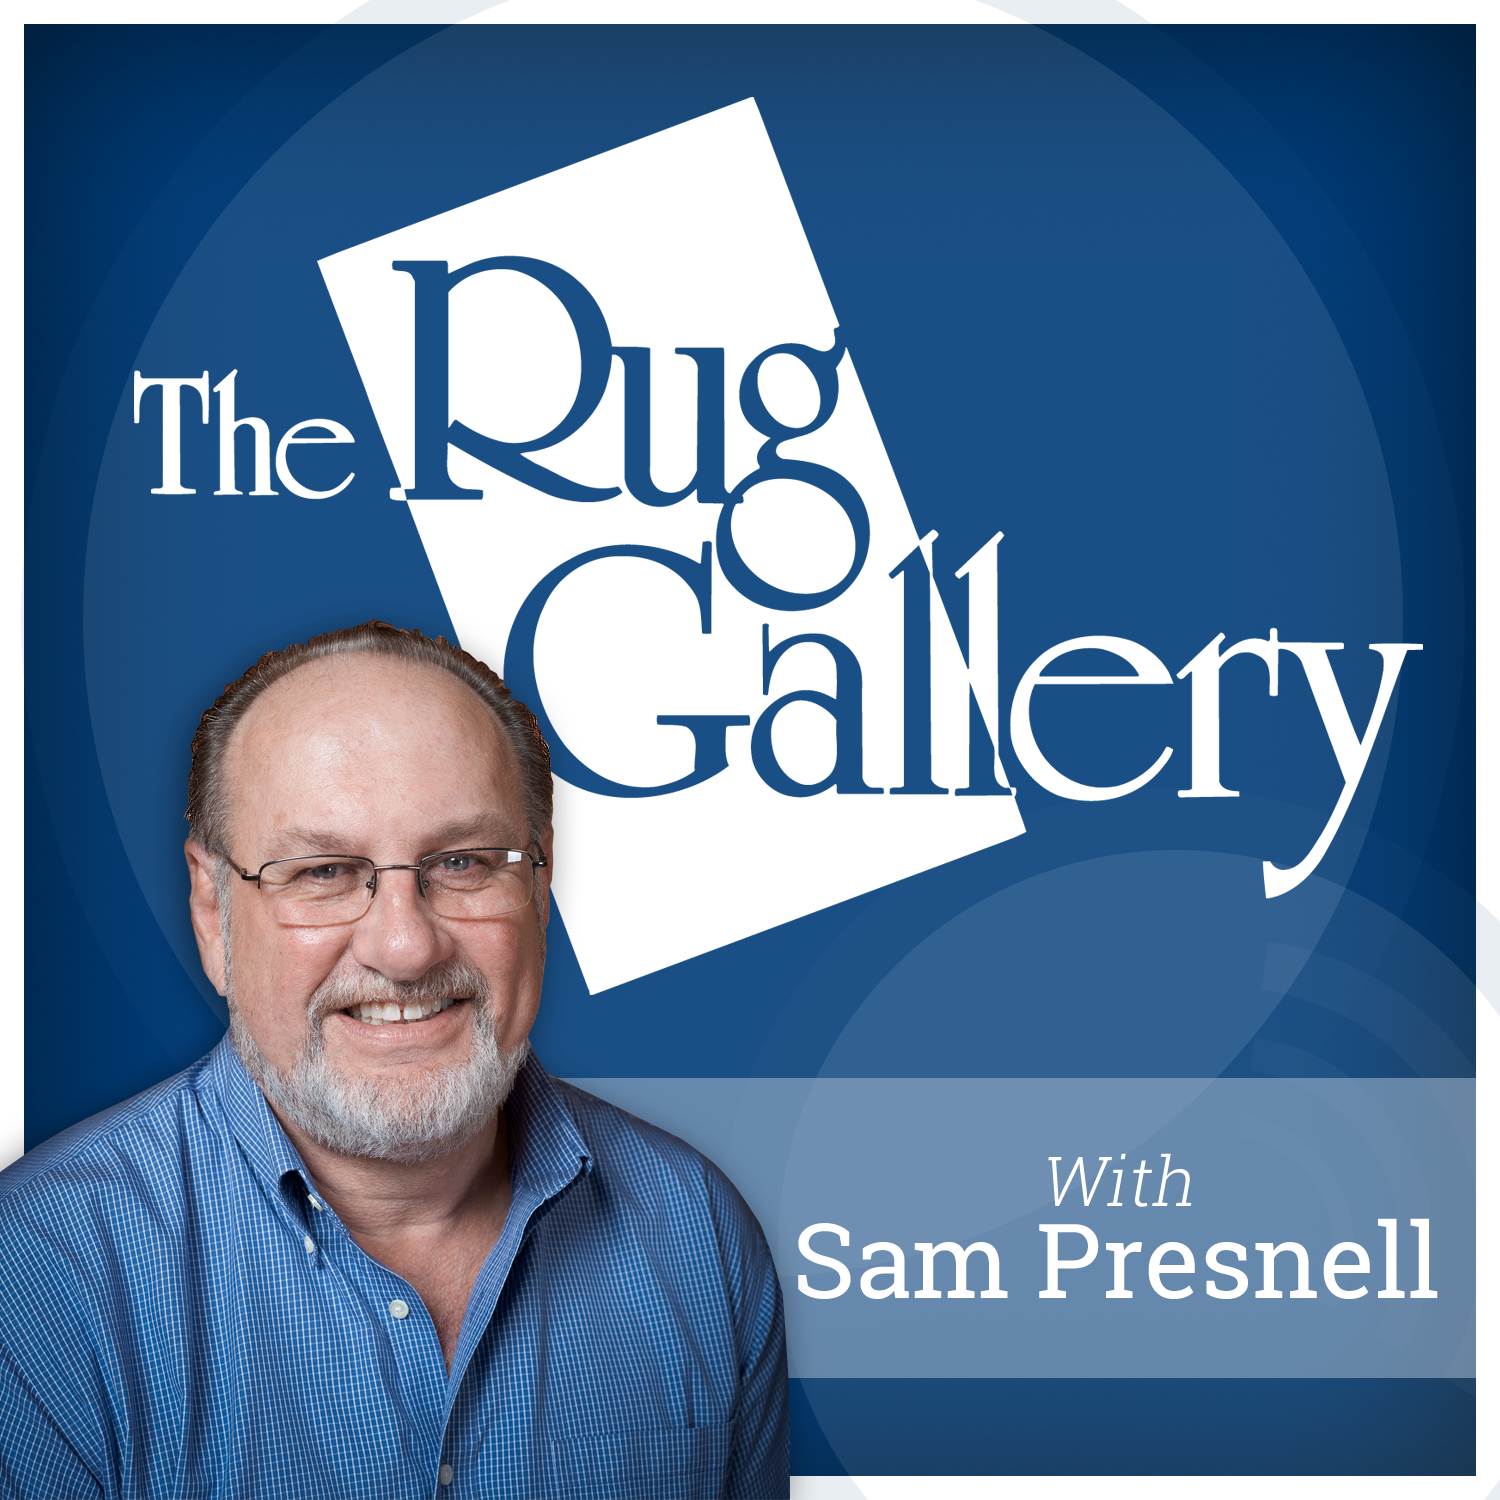 The Rug Gallery show art